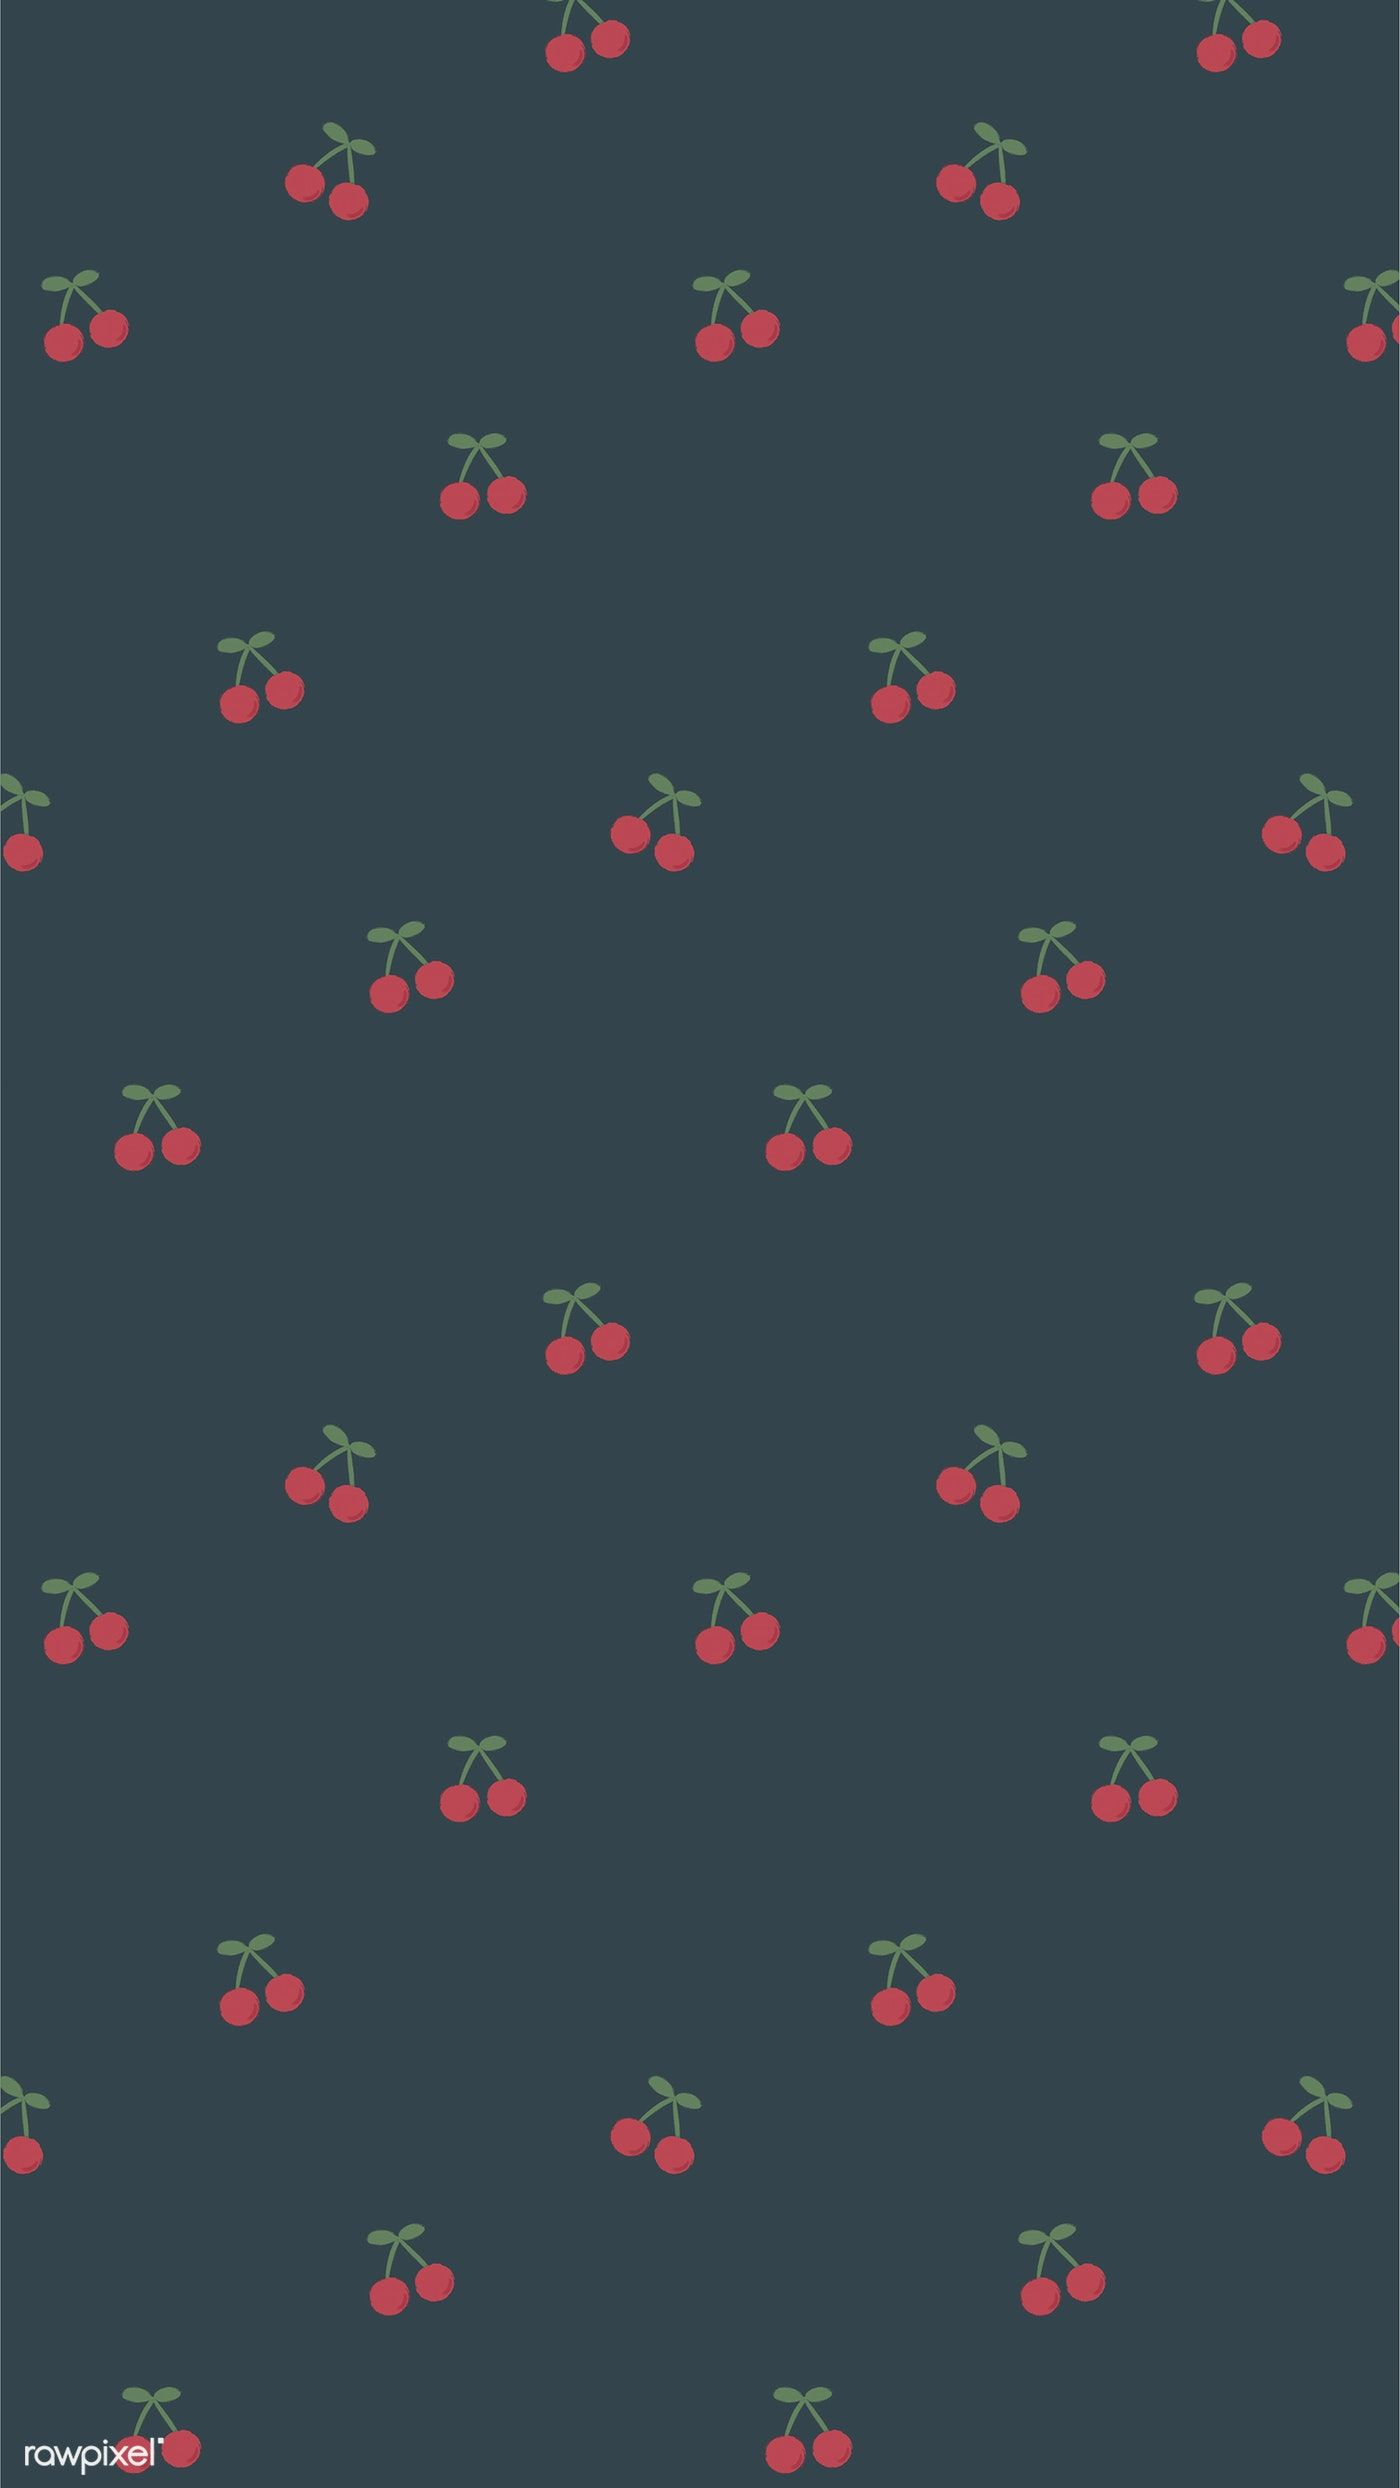 Download premium image of Red hand drawn cherry pattern on blue mobile phone wallpaper illustration by marinemynt about Cherry aesthetic mobile wallpapers, iphone wallpaper, aesthetic, android wallpaper, and backgrounds 2035429